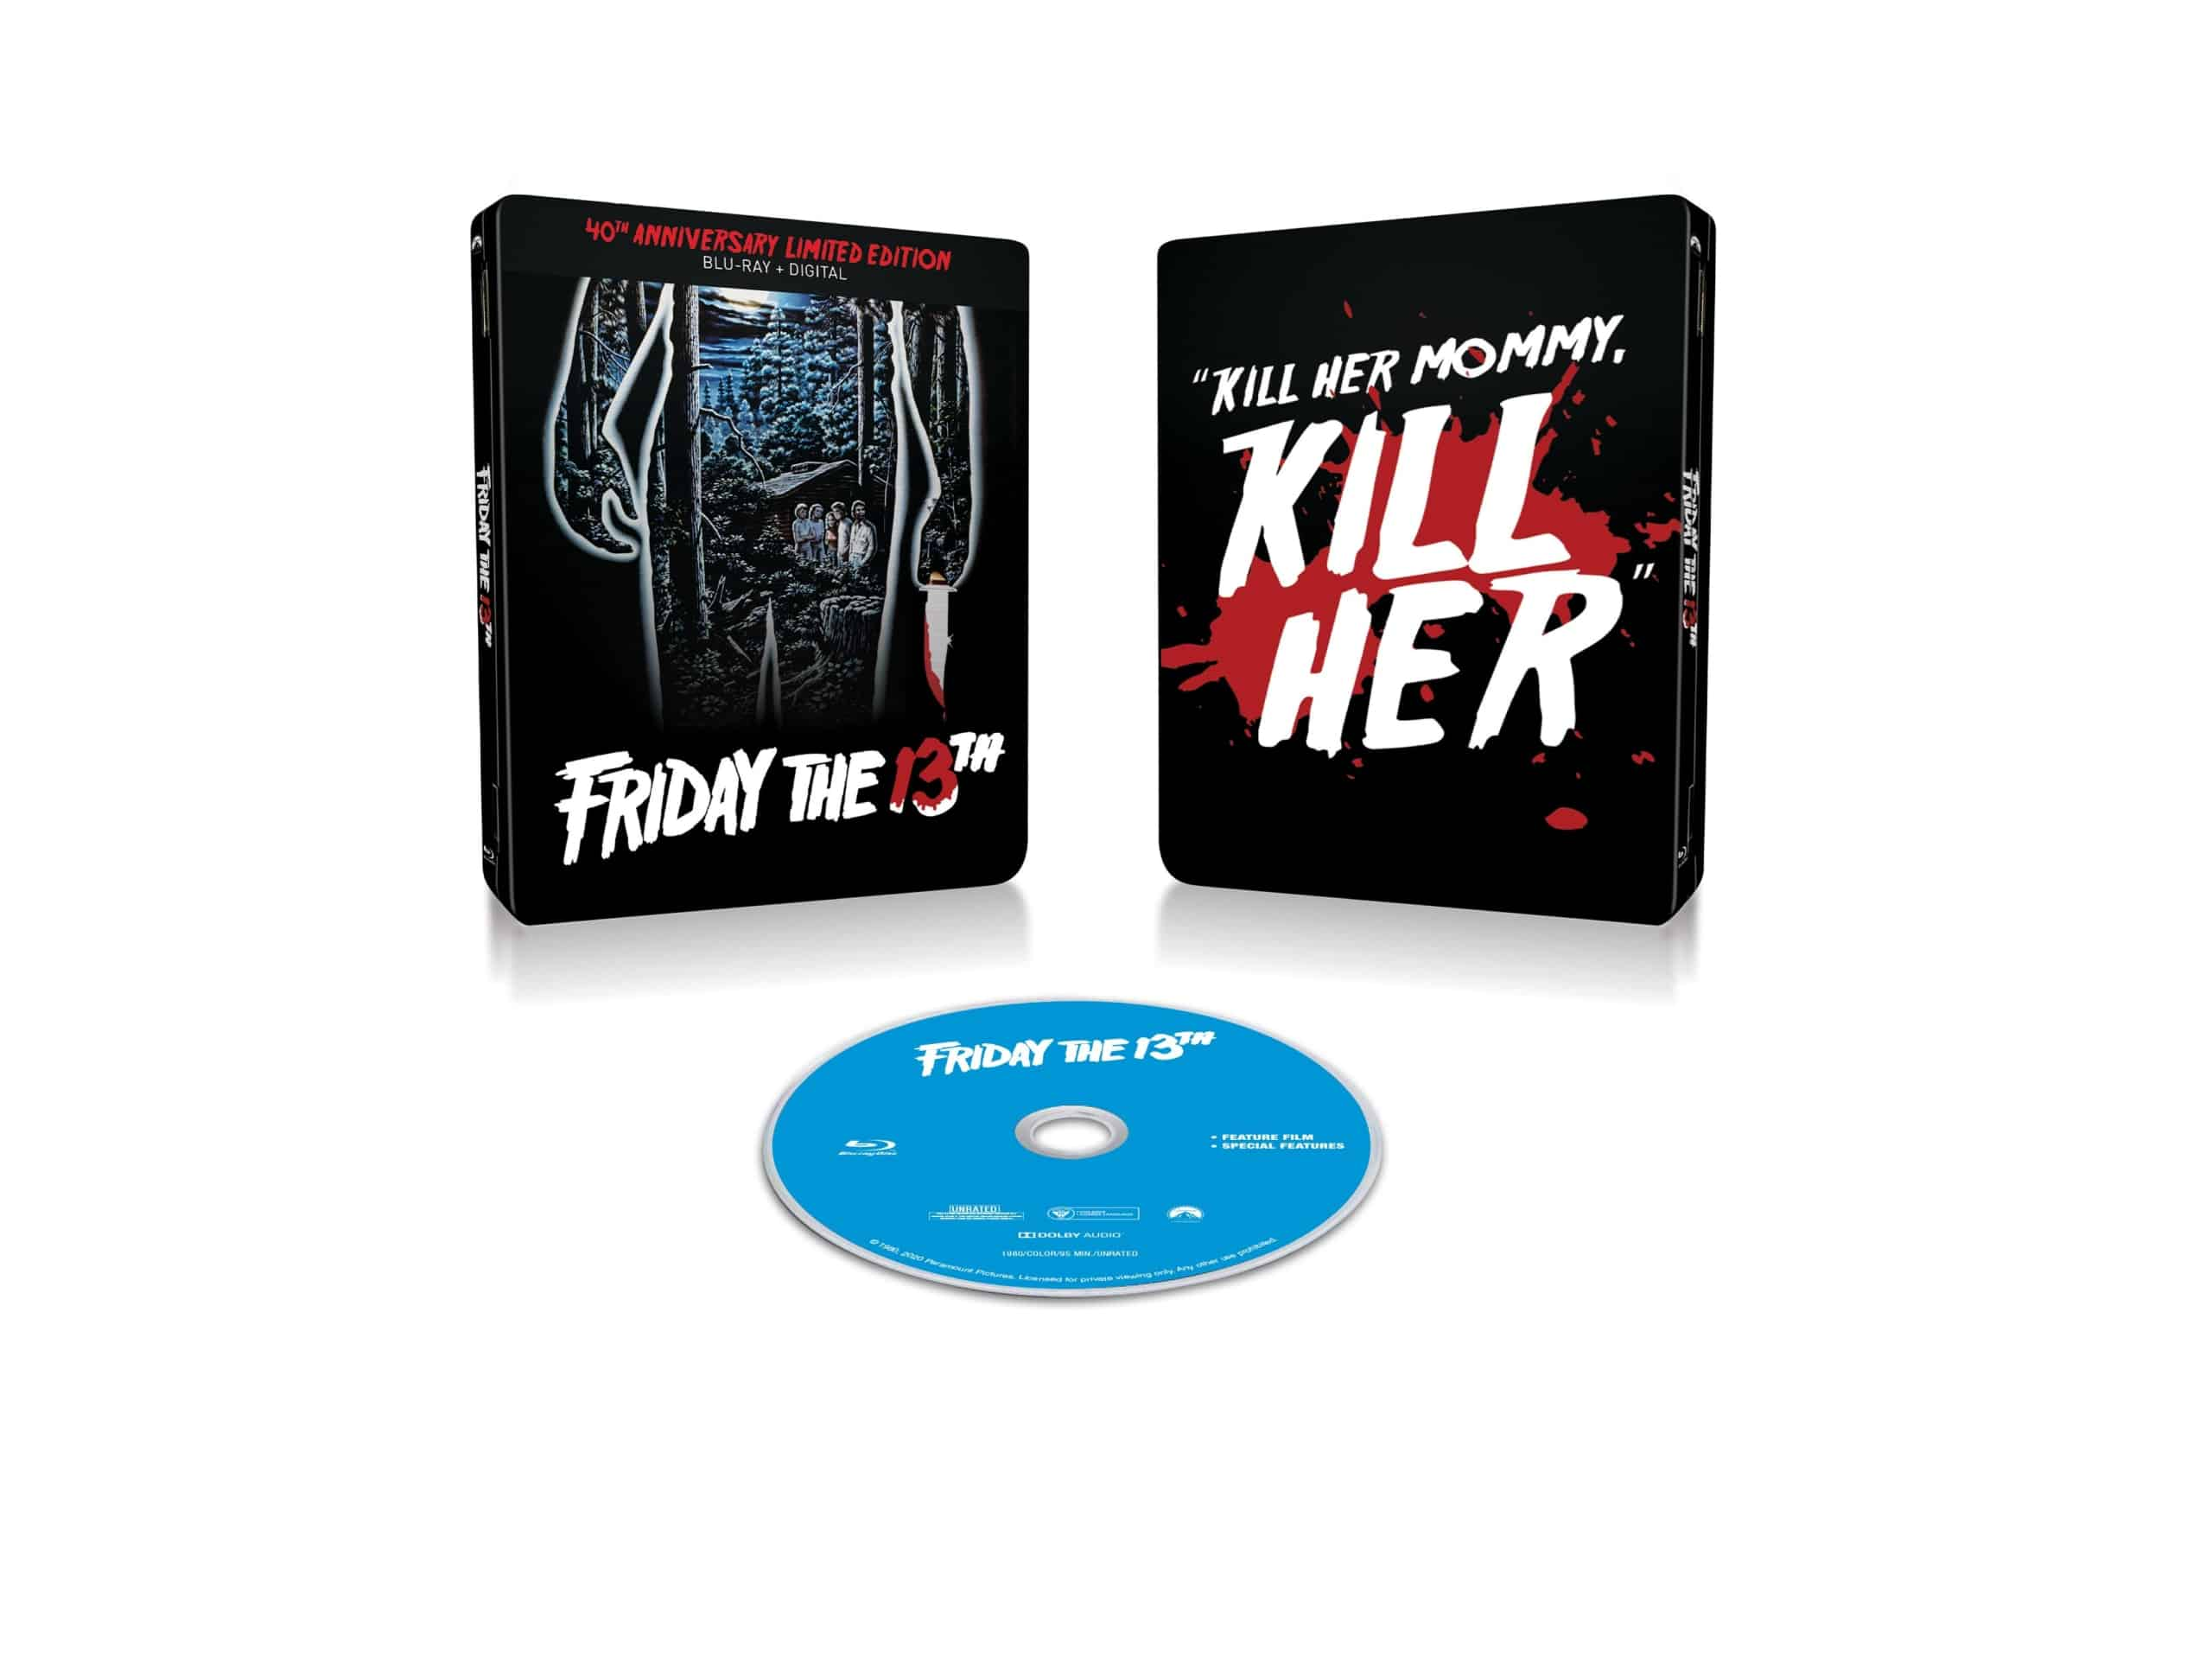 Friday the 13th Blu-ray box art 40th anniversary